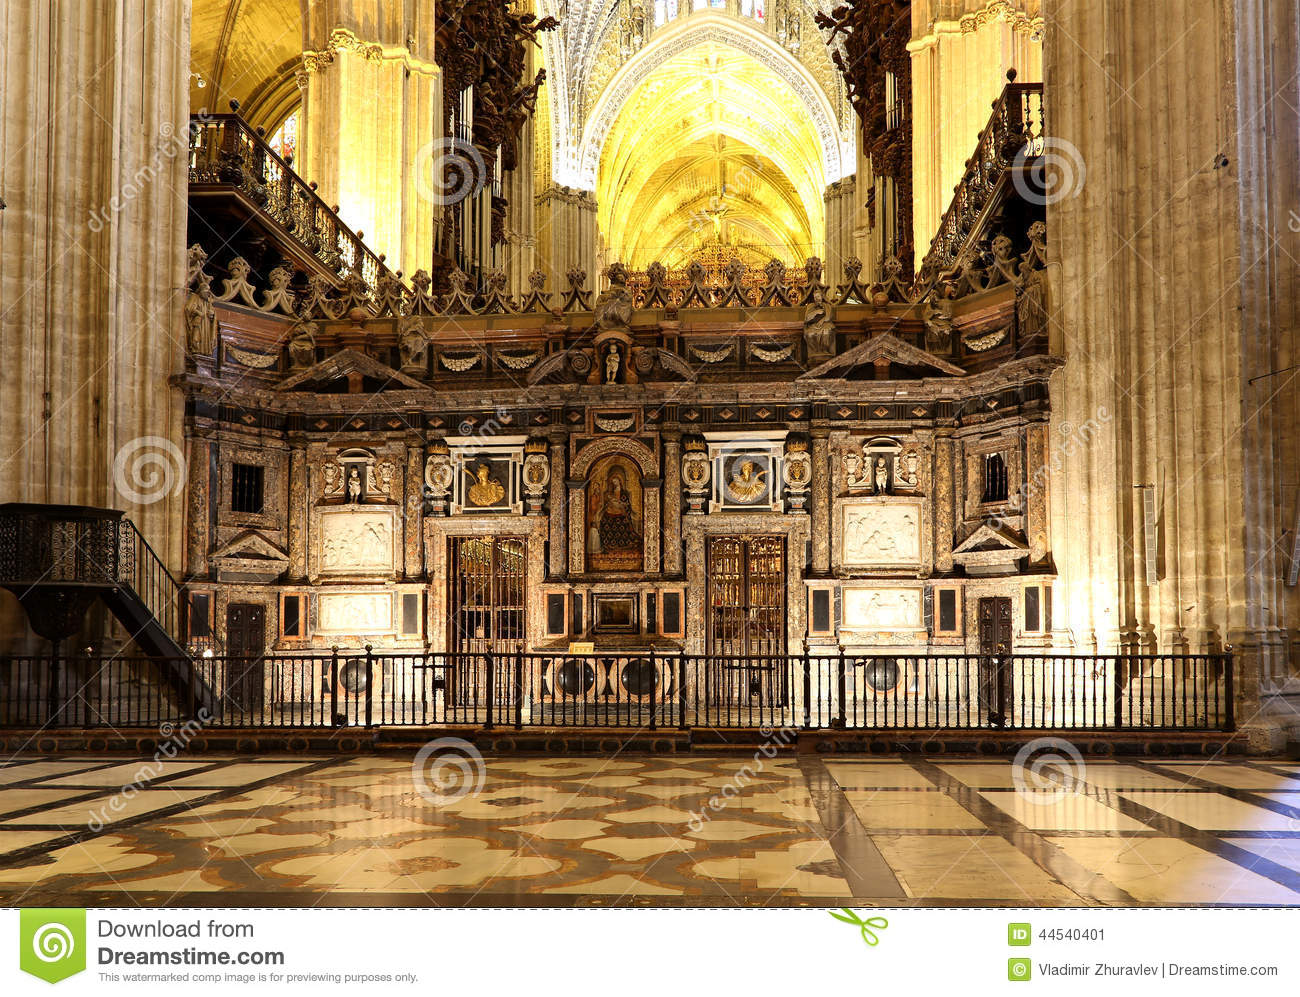 Interior Cathedral of Seville -- Cathedral of Saint Mary of the See, Andalusia, Spain